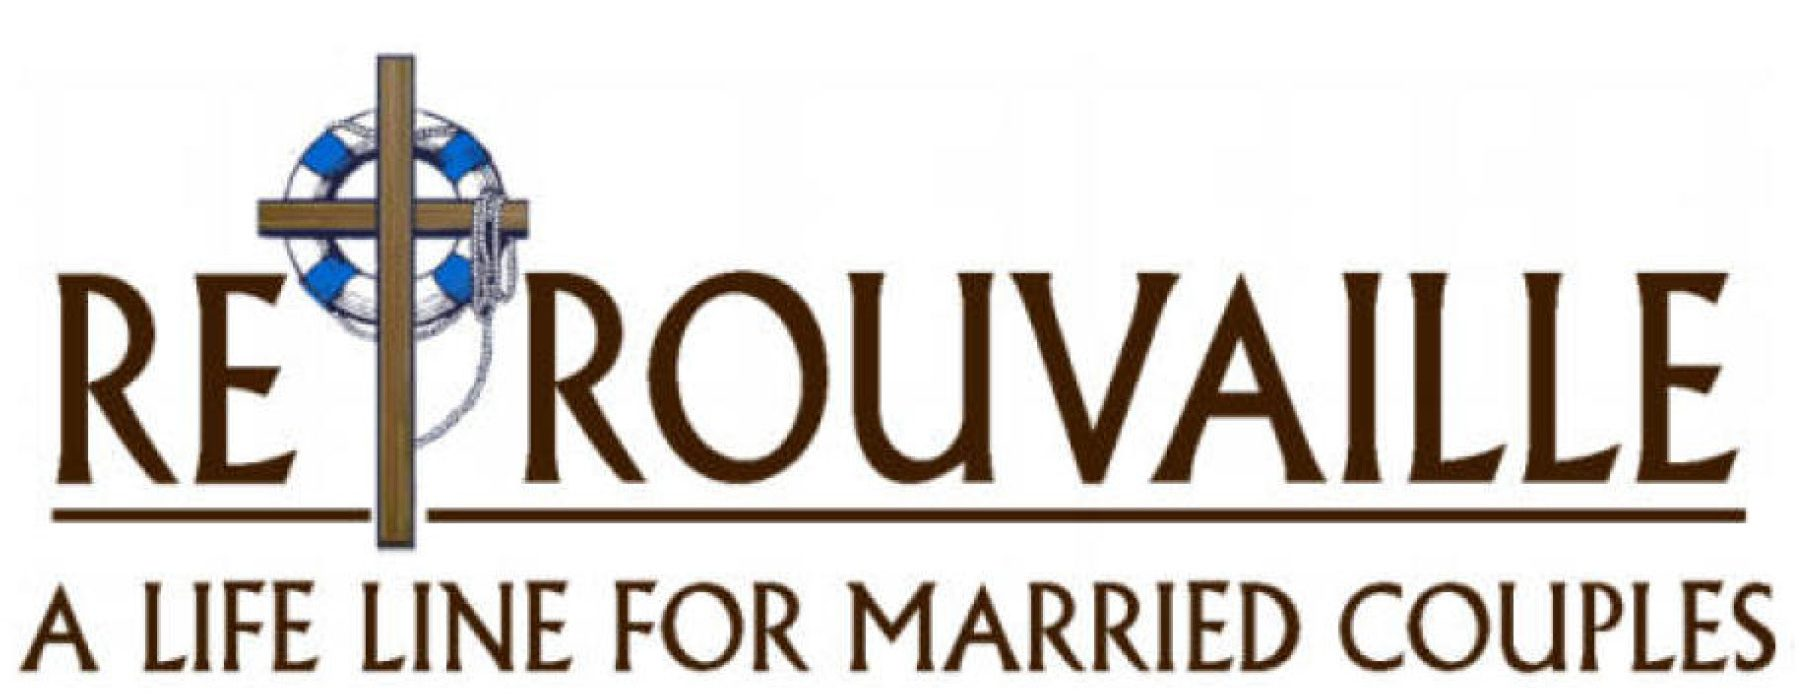 Retrouvaille helps couples listen, talk, rebuild trust - Today's Catholic